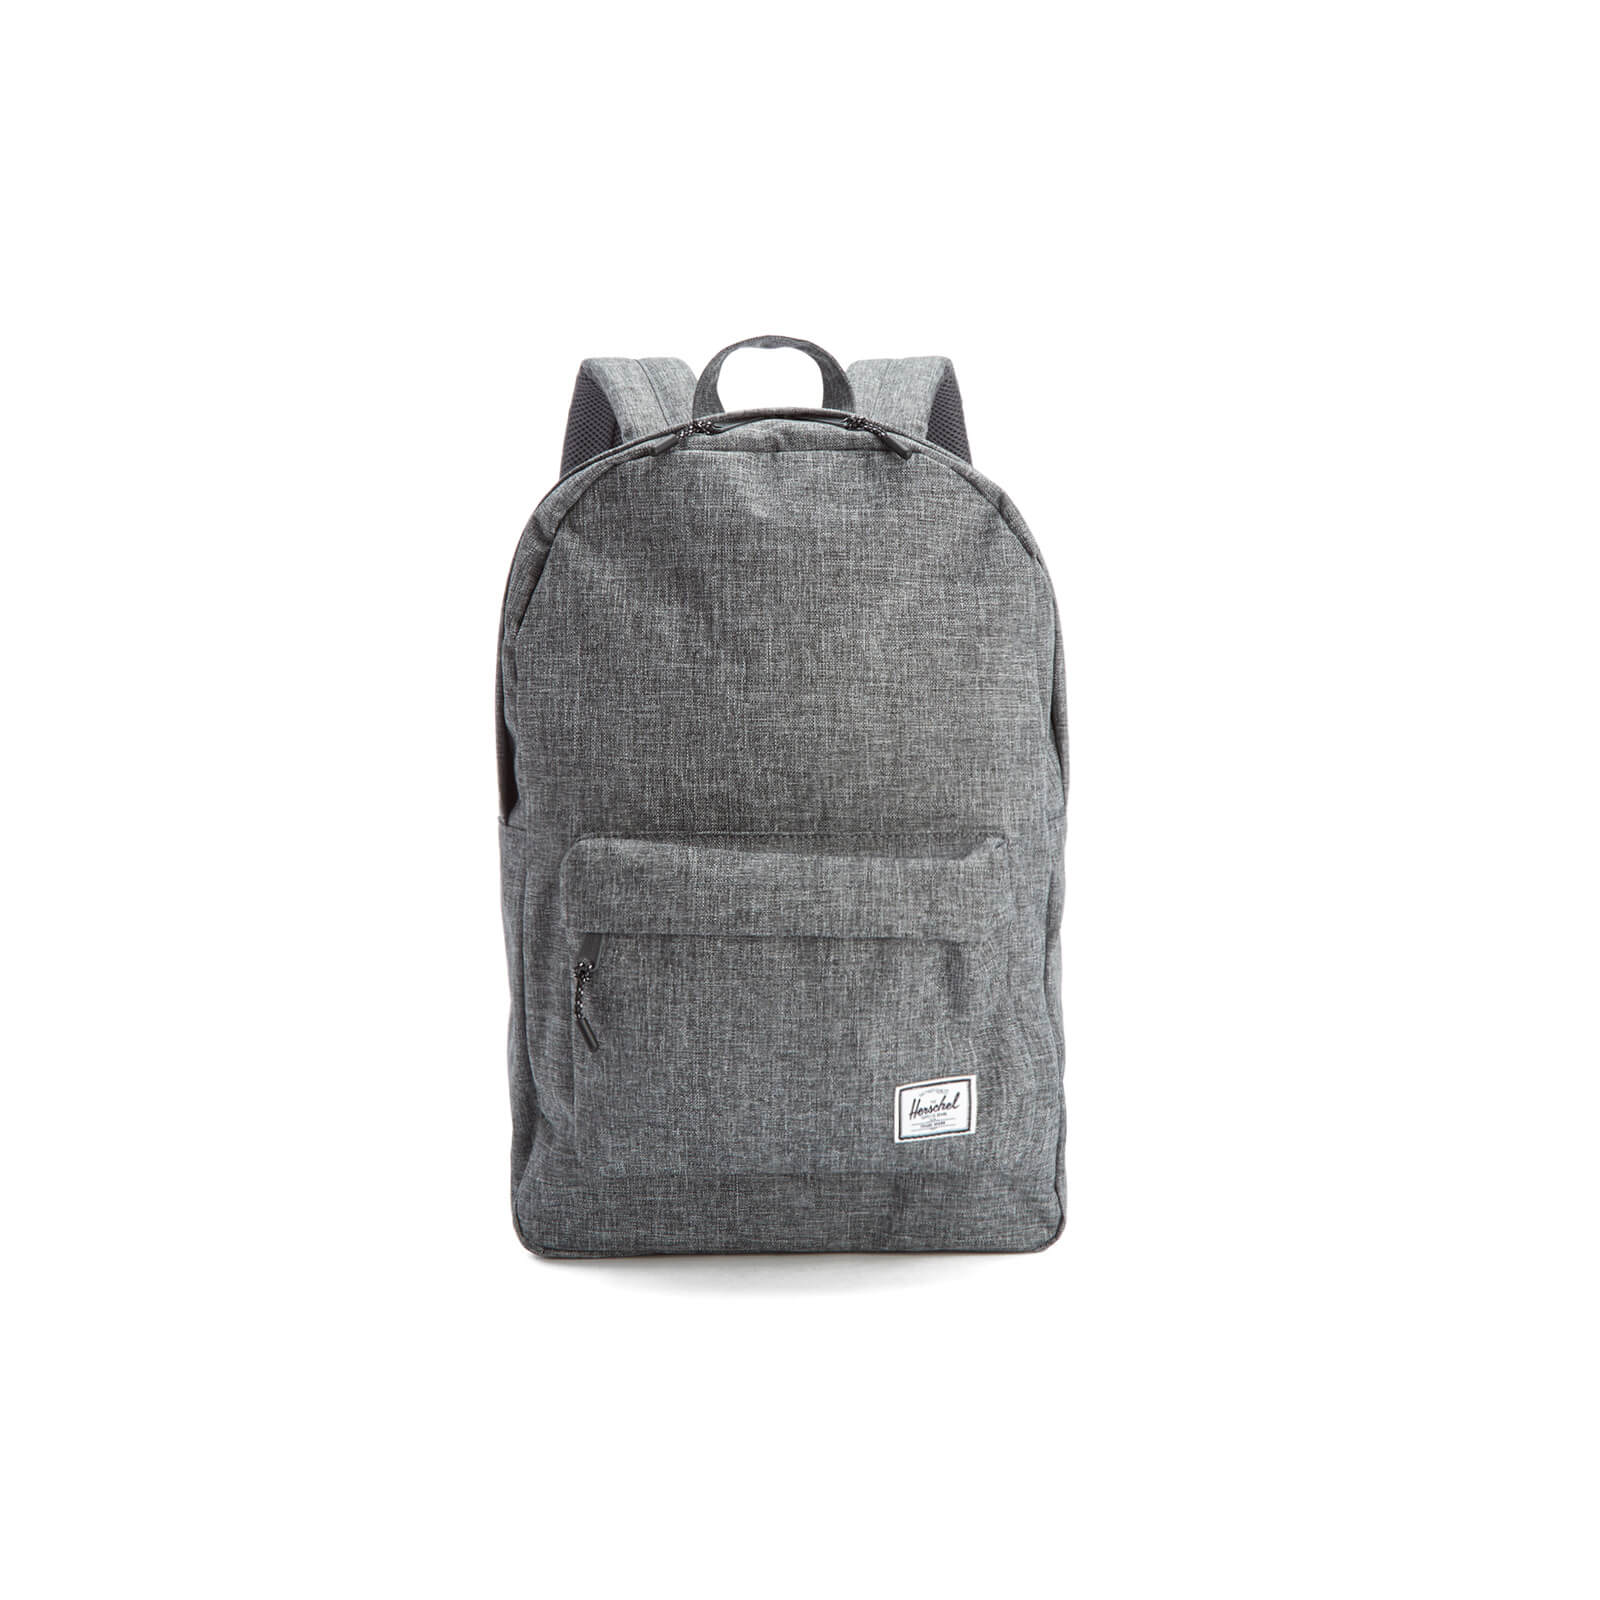 b666408f7cb Herschel Supply Co. Classic Backpack - Raven Crosshatch - Free UK Delivery  over £50